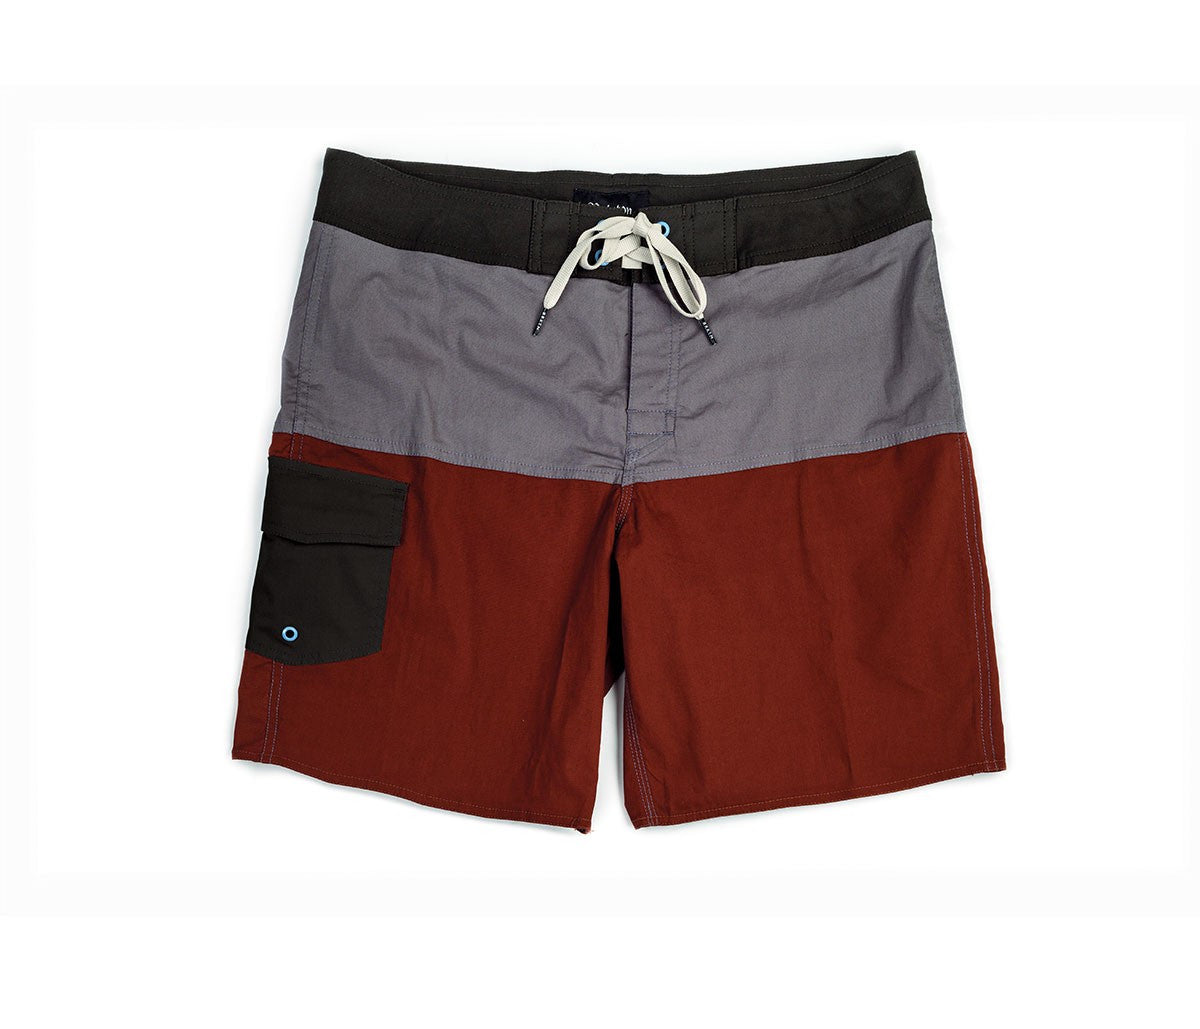 Brixton -  Leeward Men's Trunks, Charcoal/Burgundy - The Giant Peach - 1